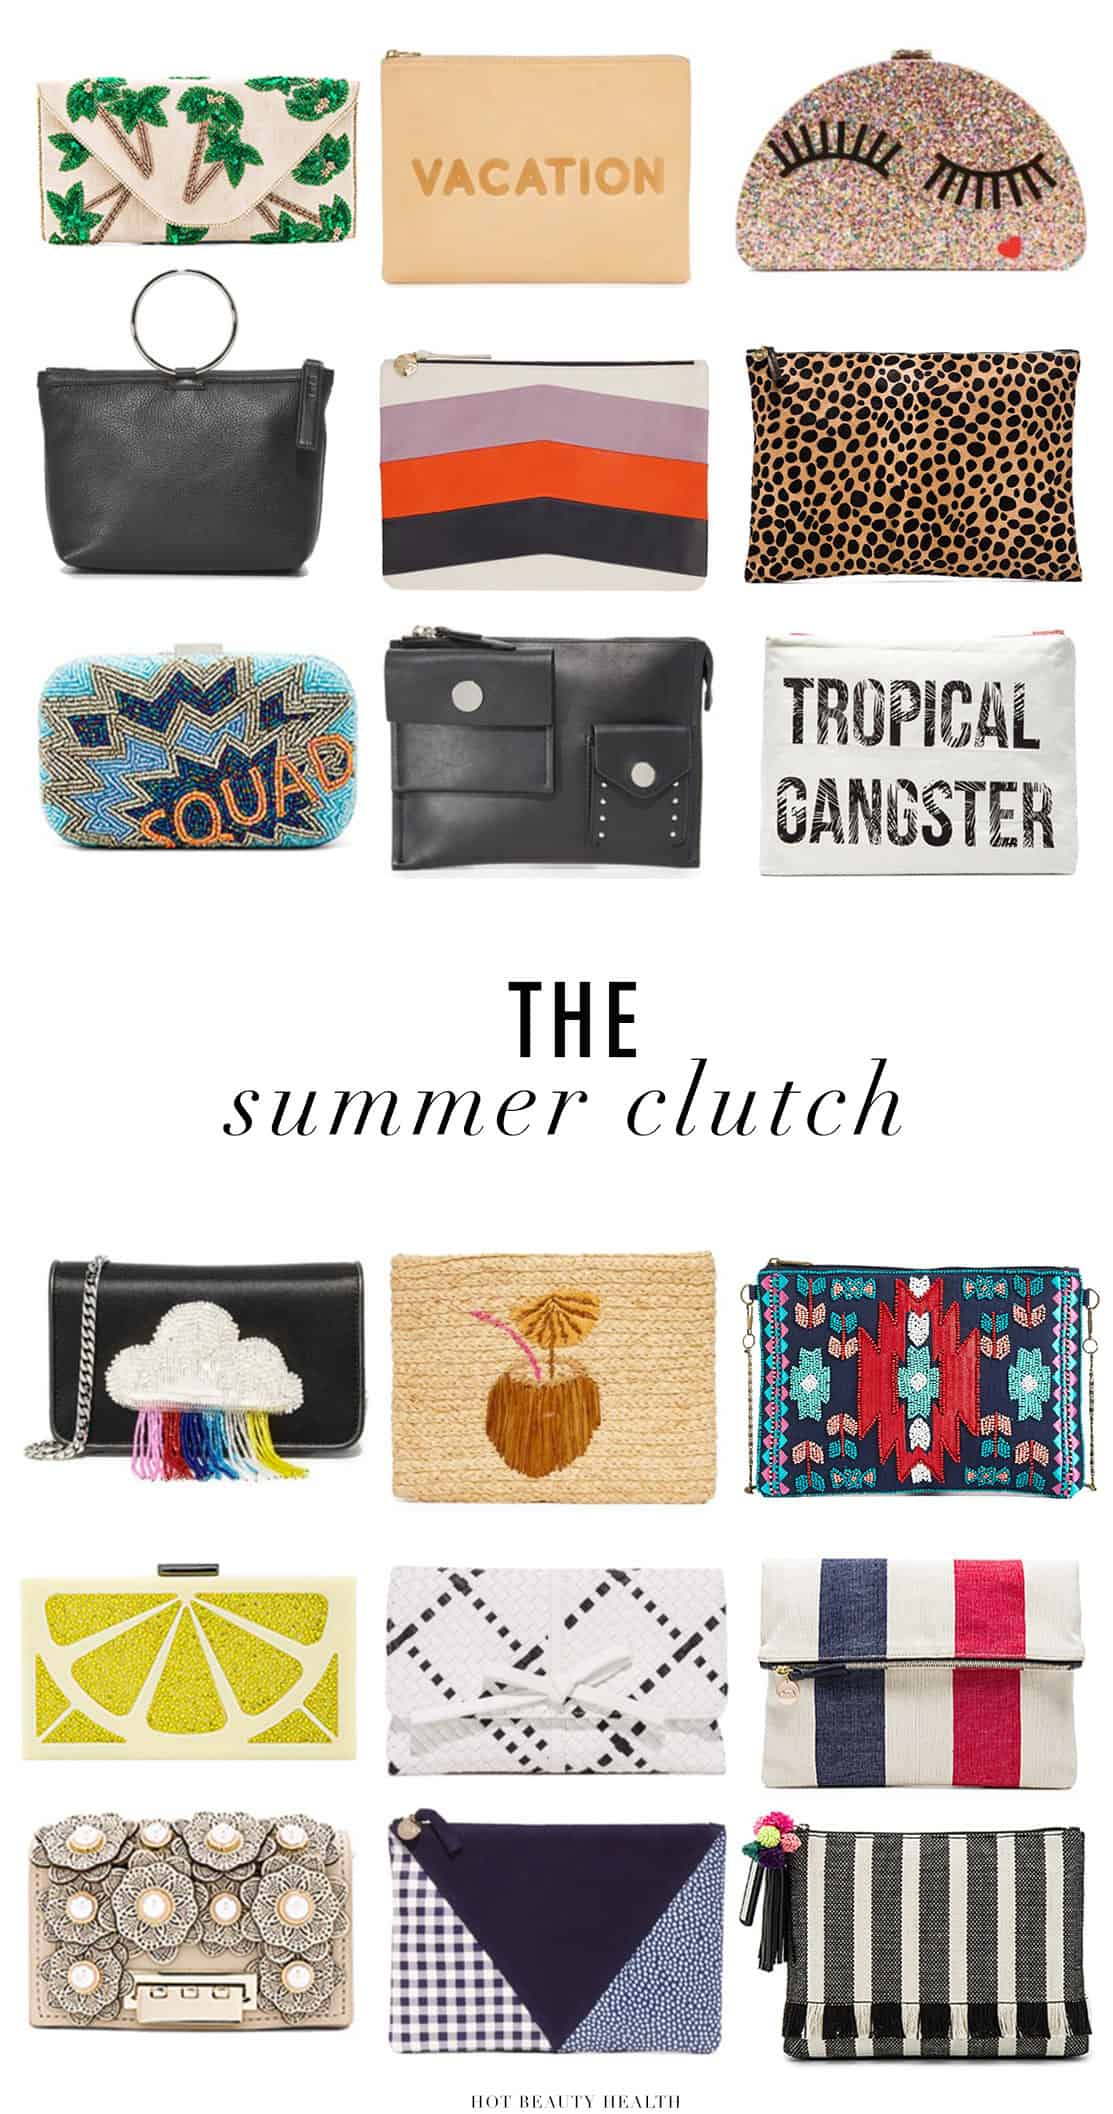 The perfect accessory to add to any casual or classy outfit is a summer clutch bag. I've rounded up 18 of the stylish clutches to liven up your summer look.